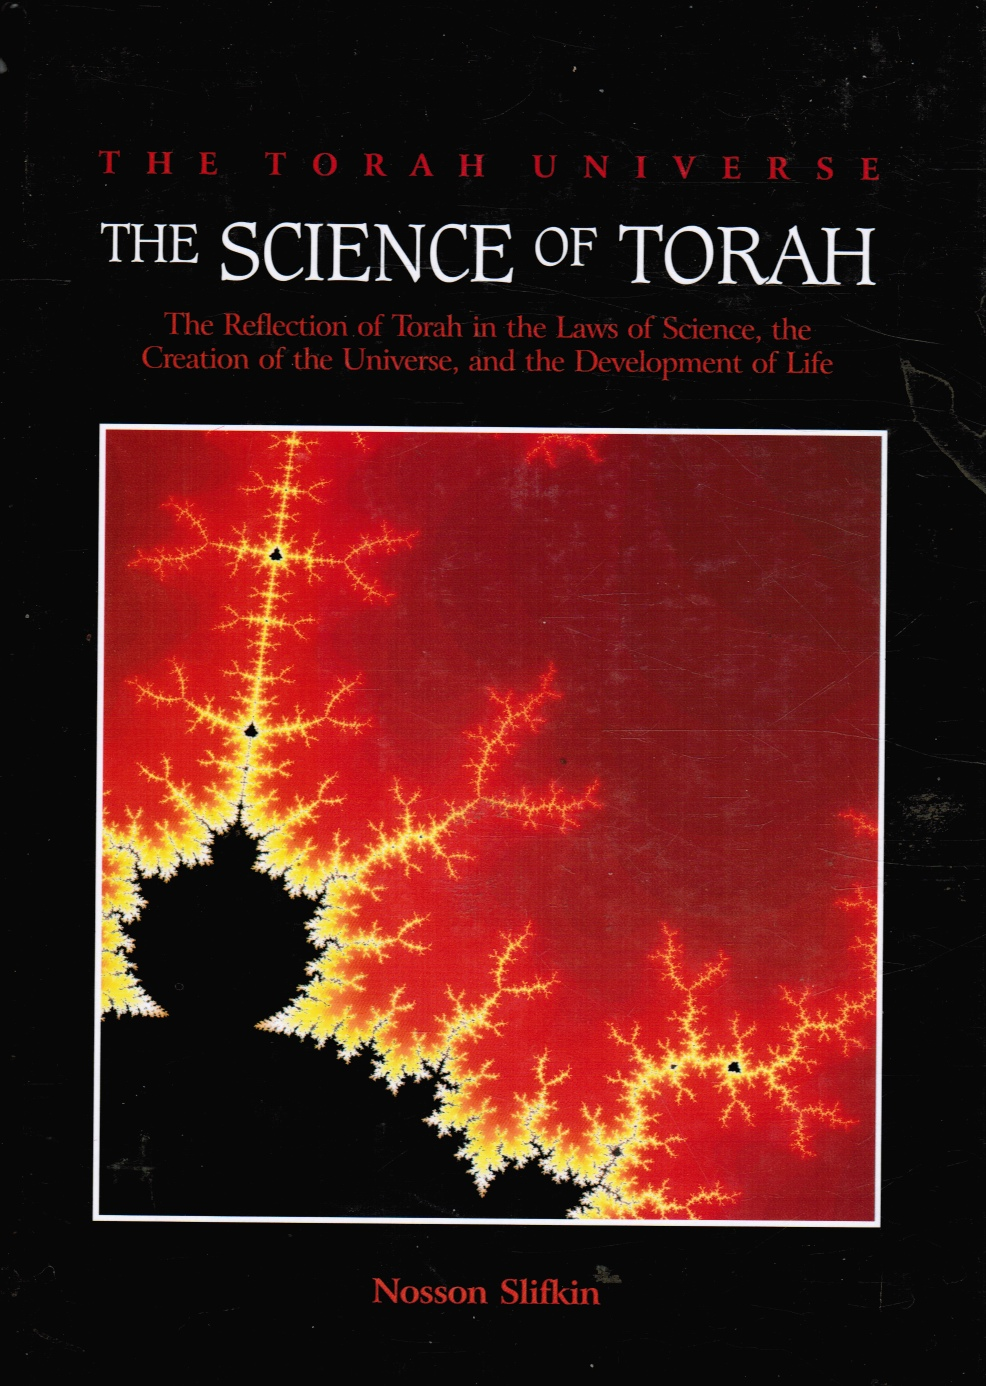 Image for The Science of Torah - the Reflection of Torah in the Laws of Science, the Creation of the Universe and the Development of Life